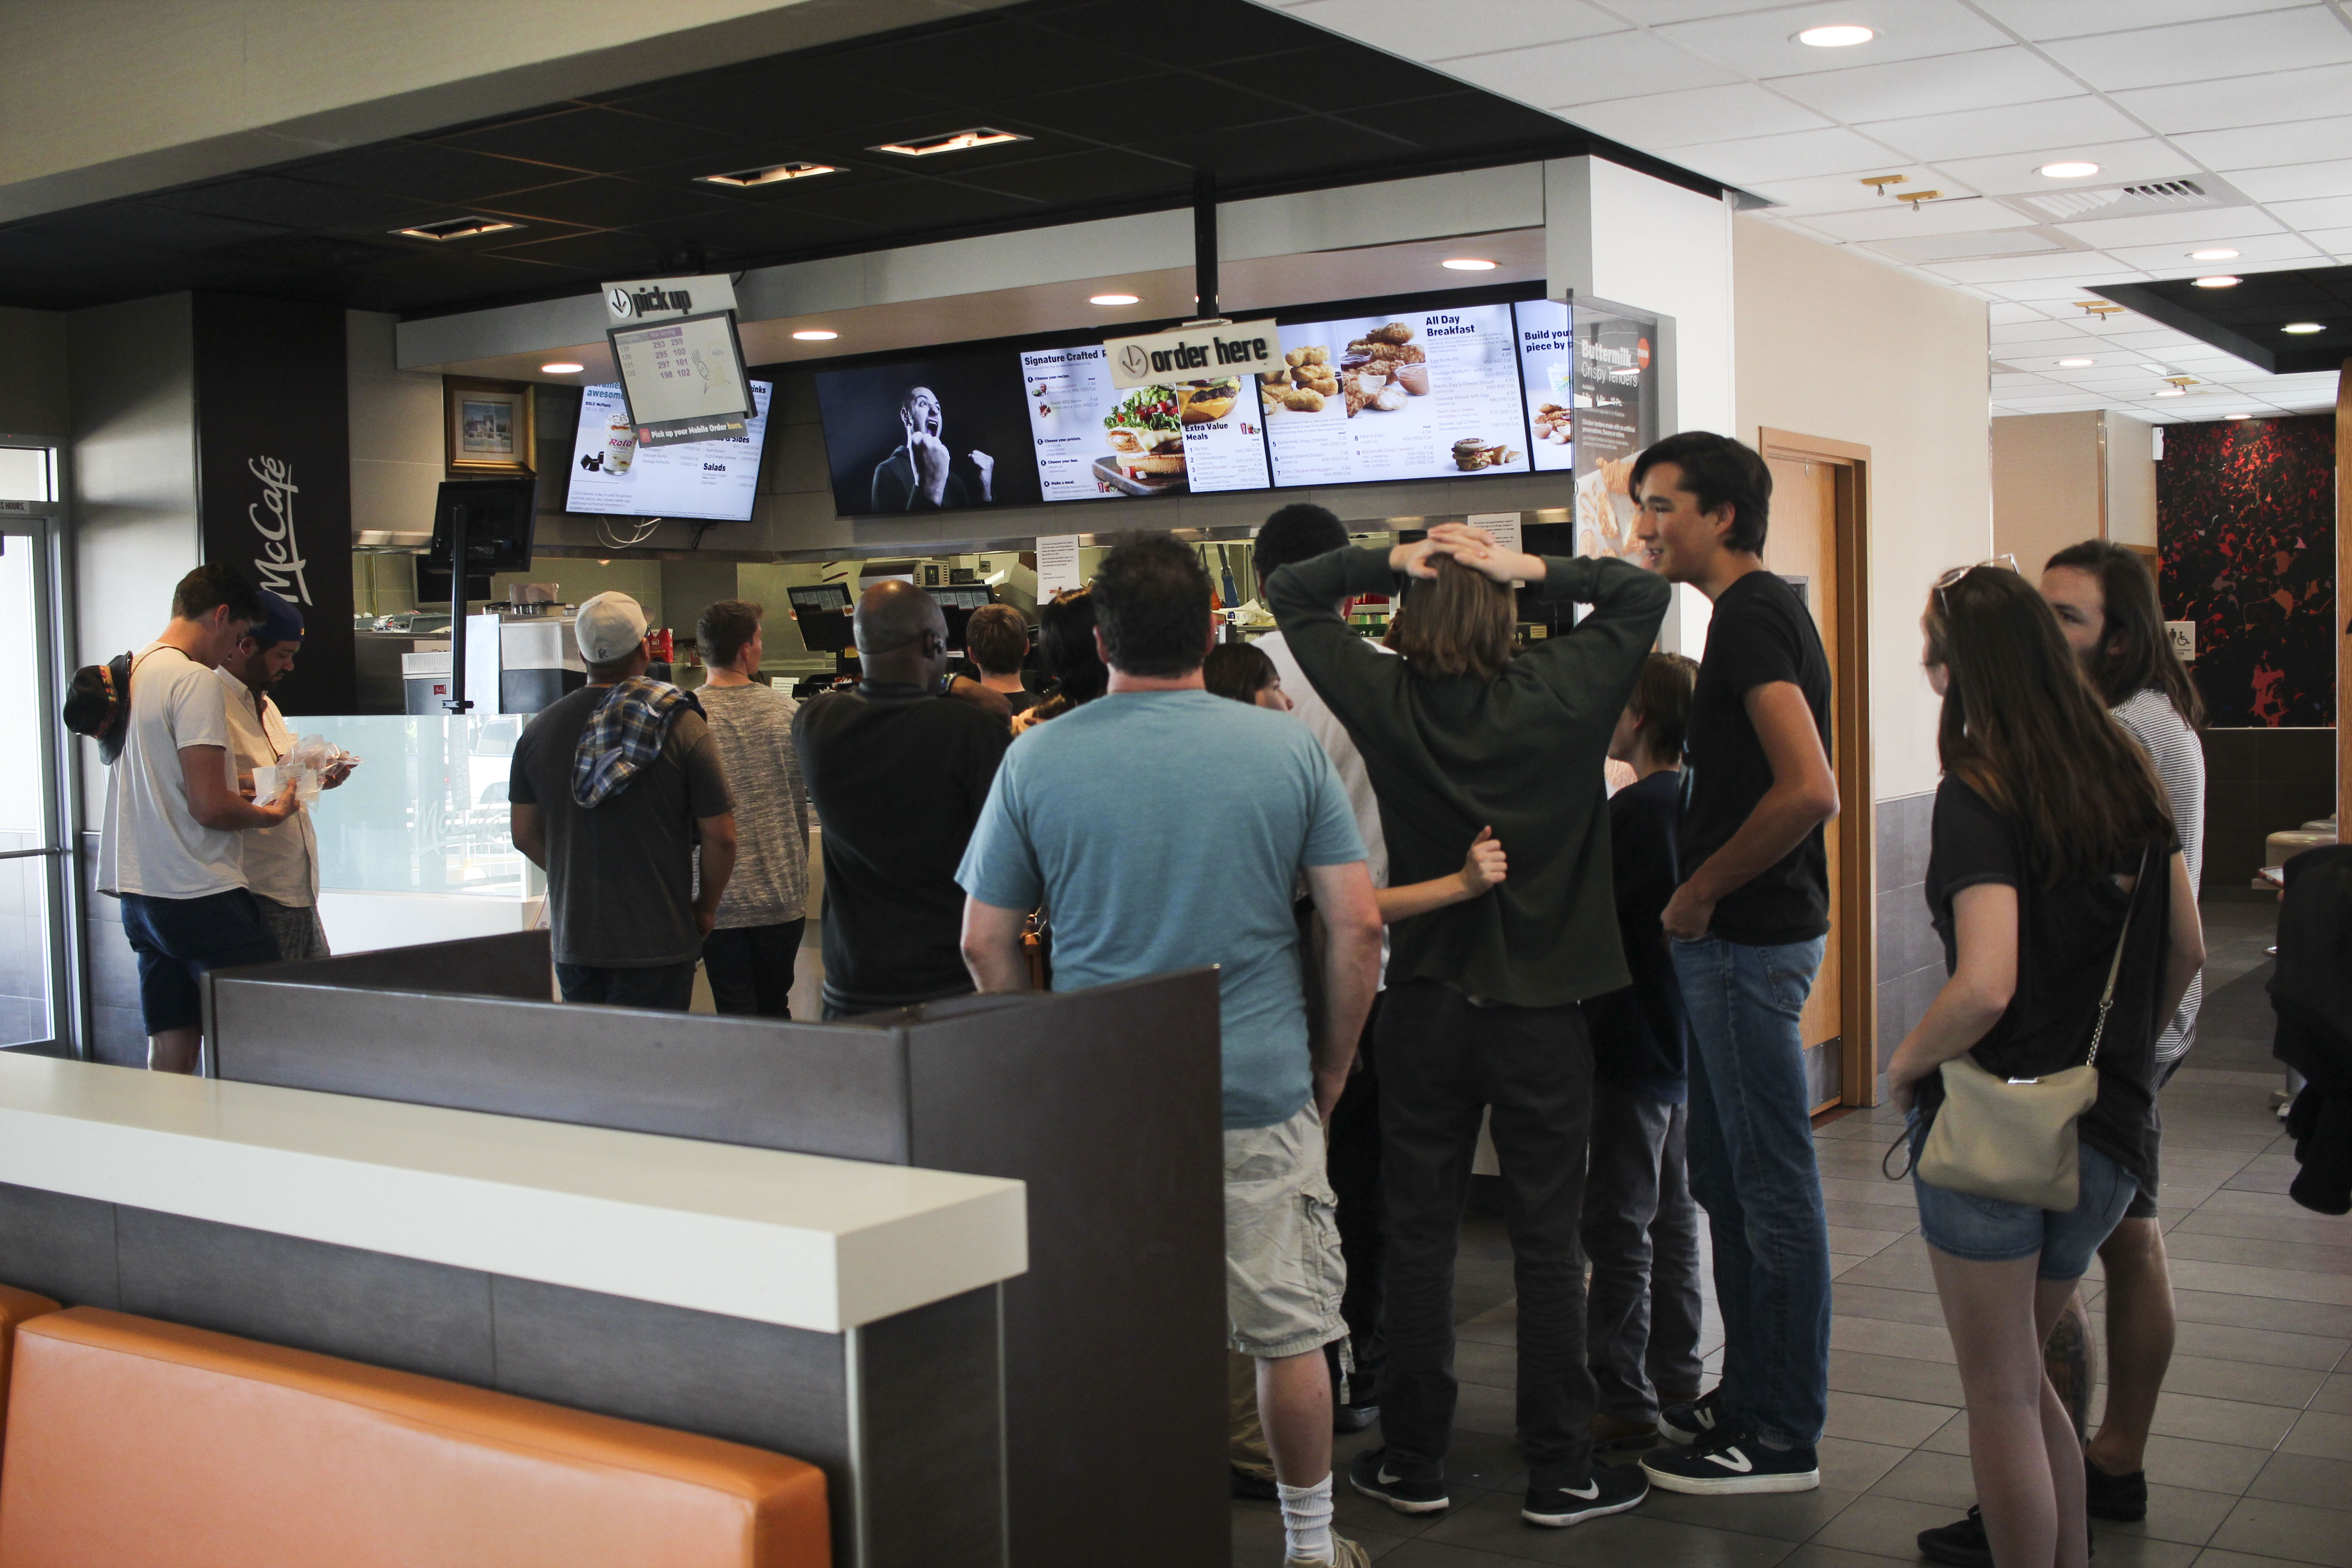 The sad people of McDonald's who didn't get any Szechuan ...